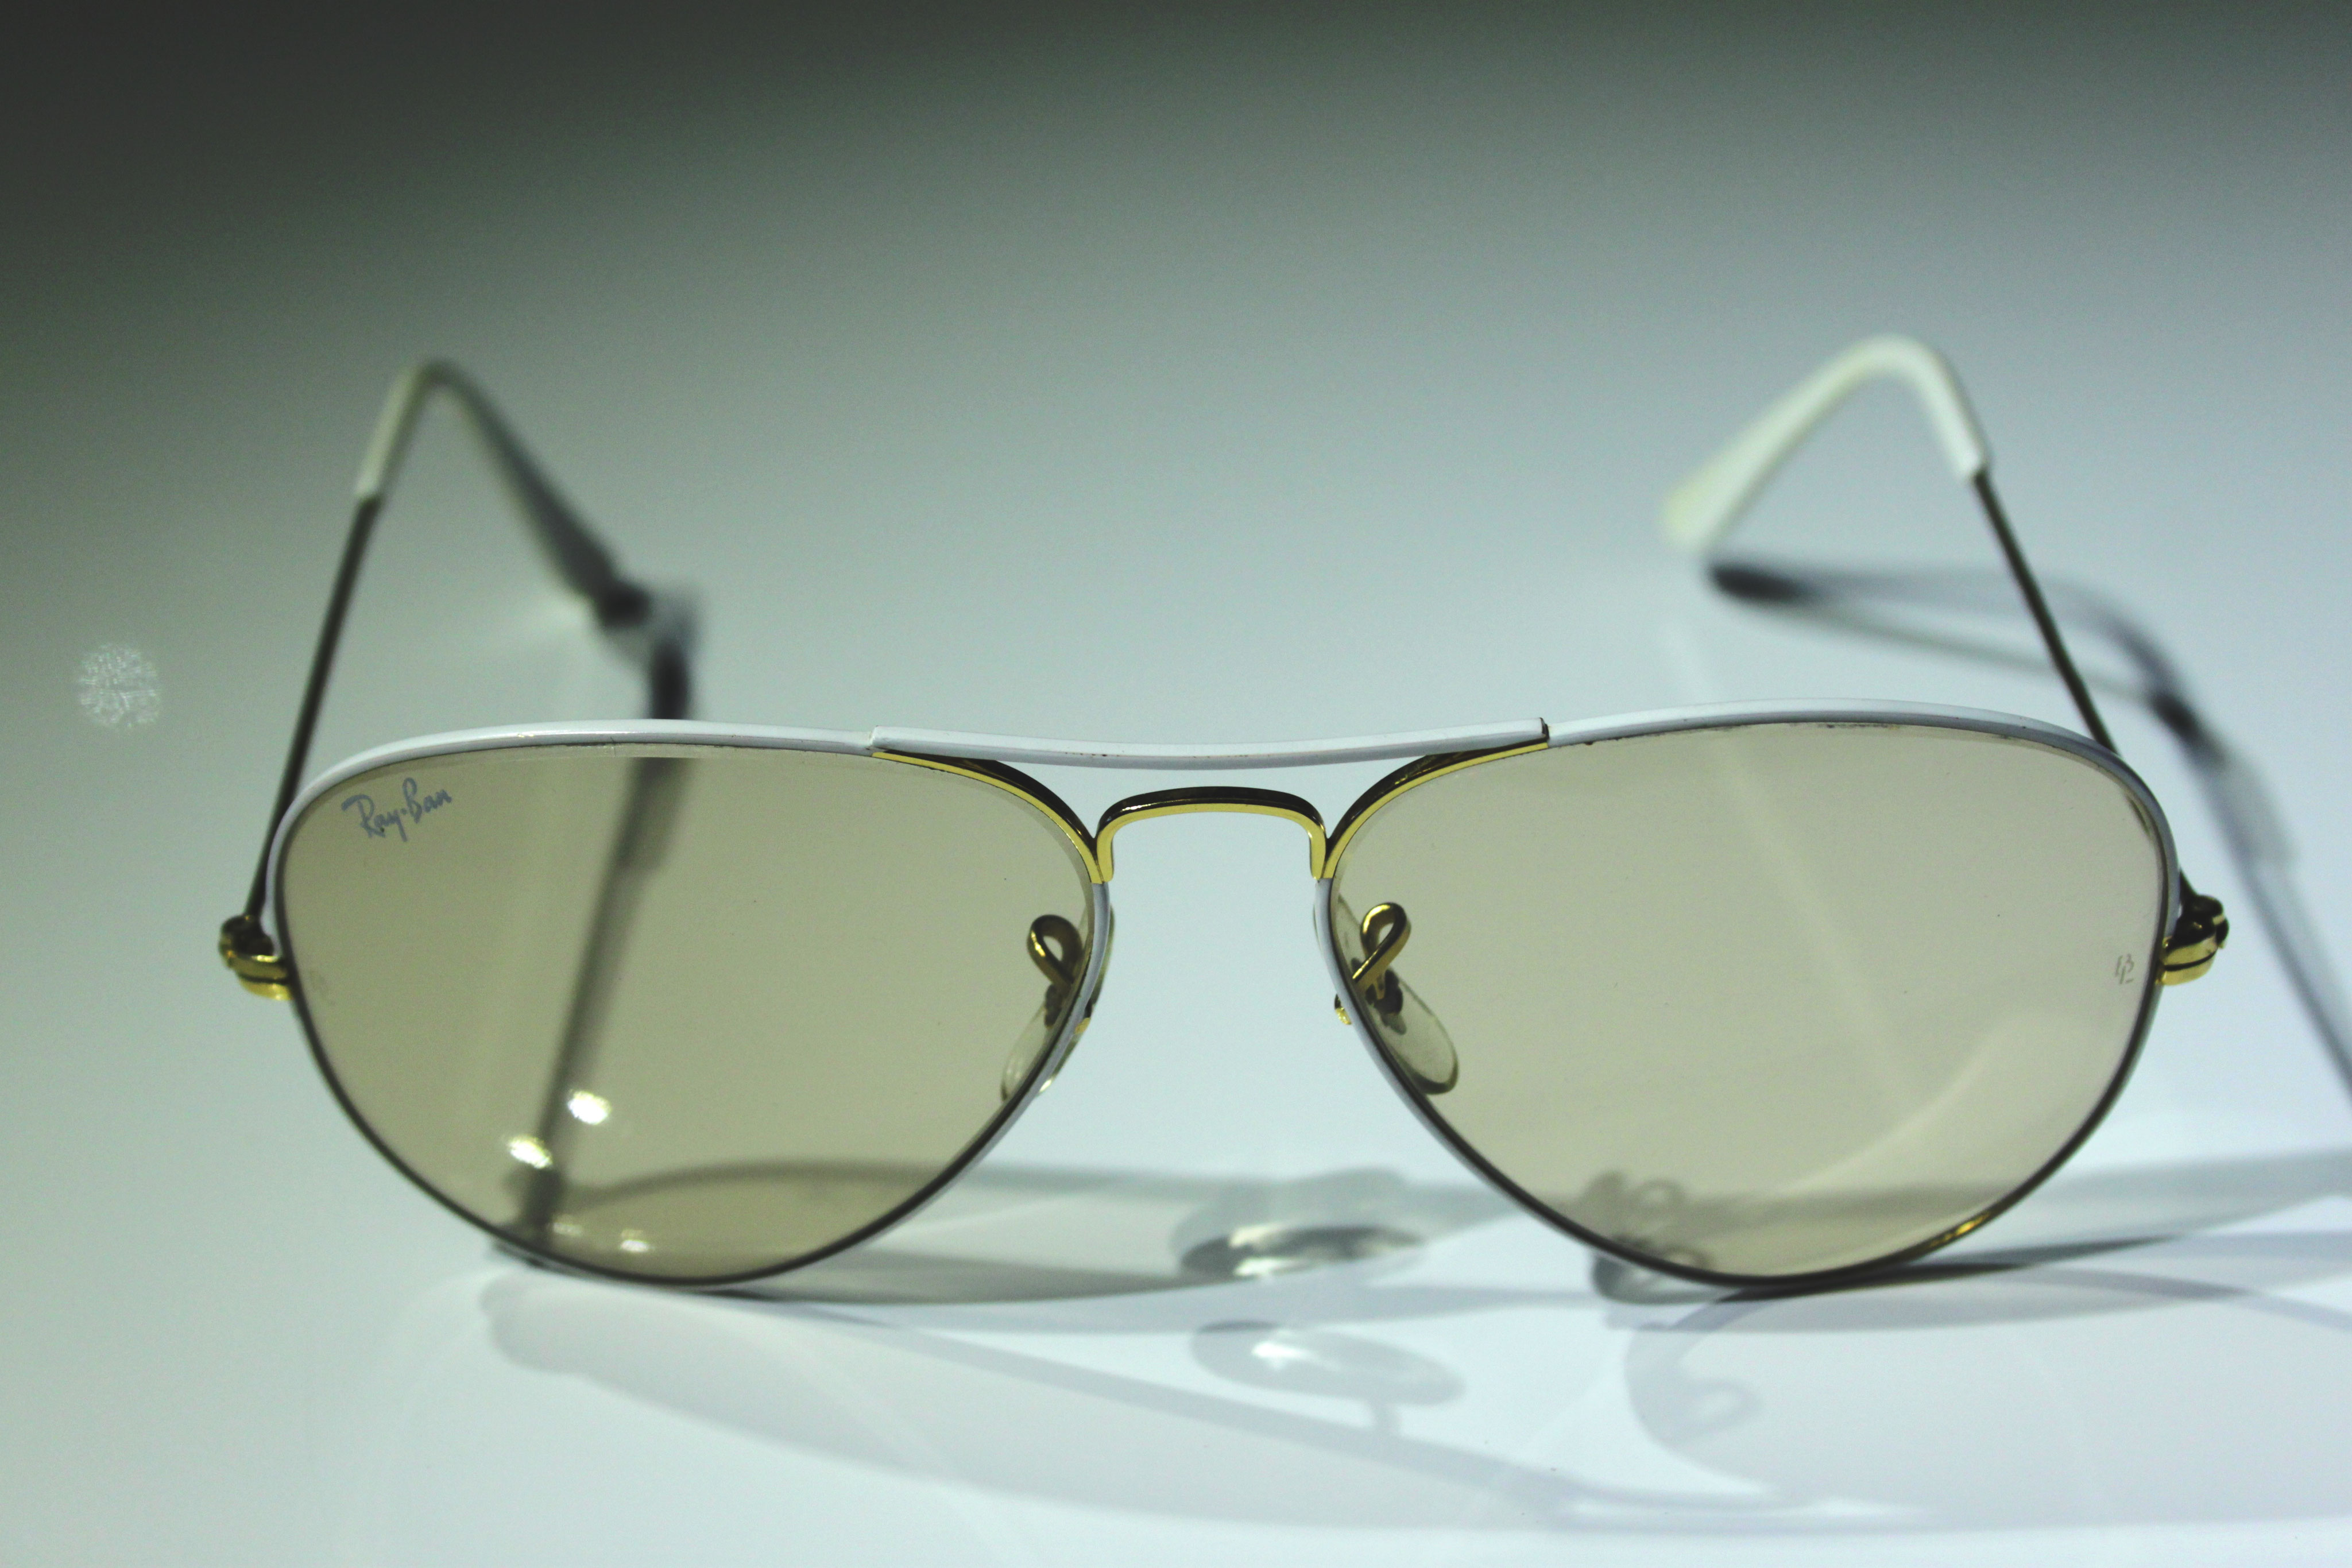 88b5bbfedd Large Metal I Flying Colors White - Vintage Ray Ban Sunglasses by Bausch  and Lomb